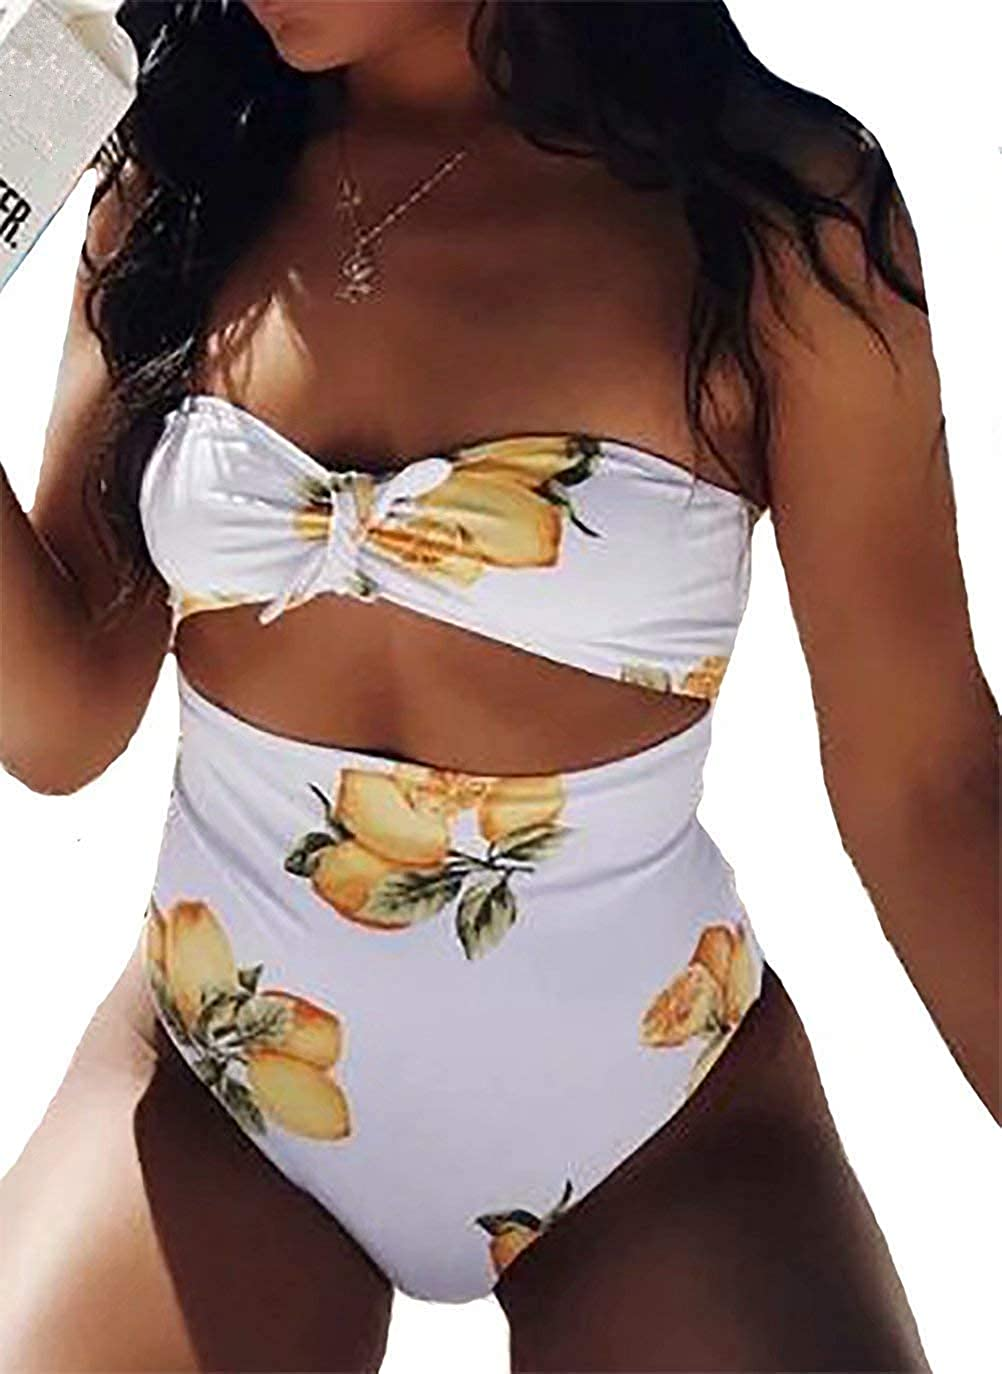 cac4cab736 Women's One Piece Lemon Print Strapless Bandeau Swimsuit Cutout High  Waisted Monokini Bathing Suits at Amazon Women's Clothing store: